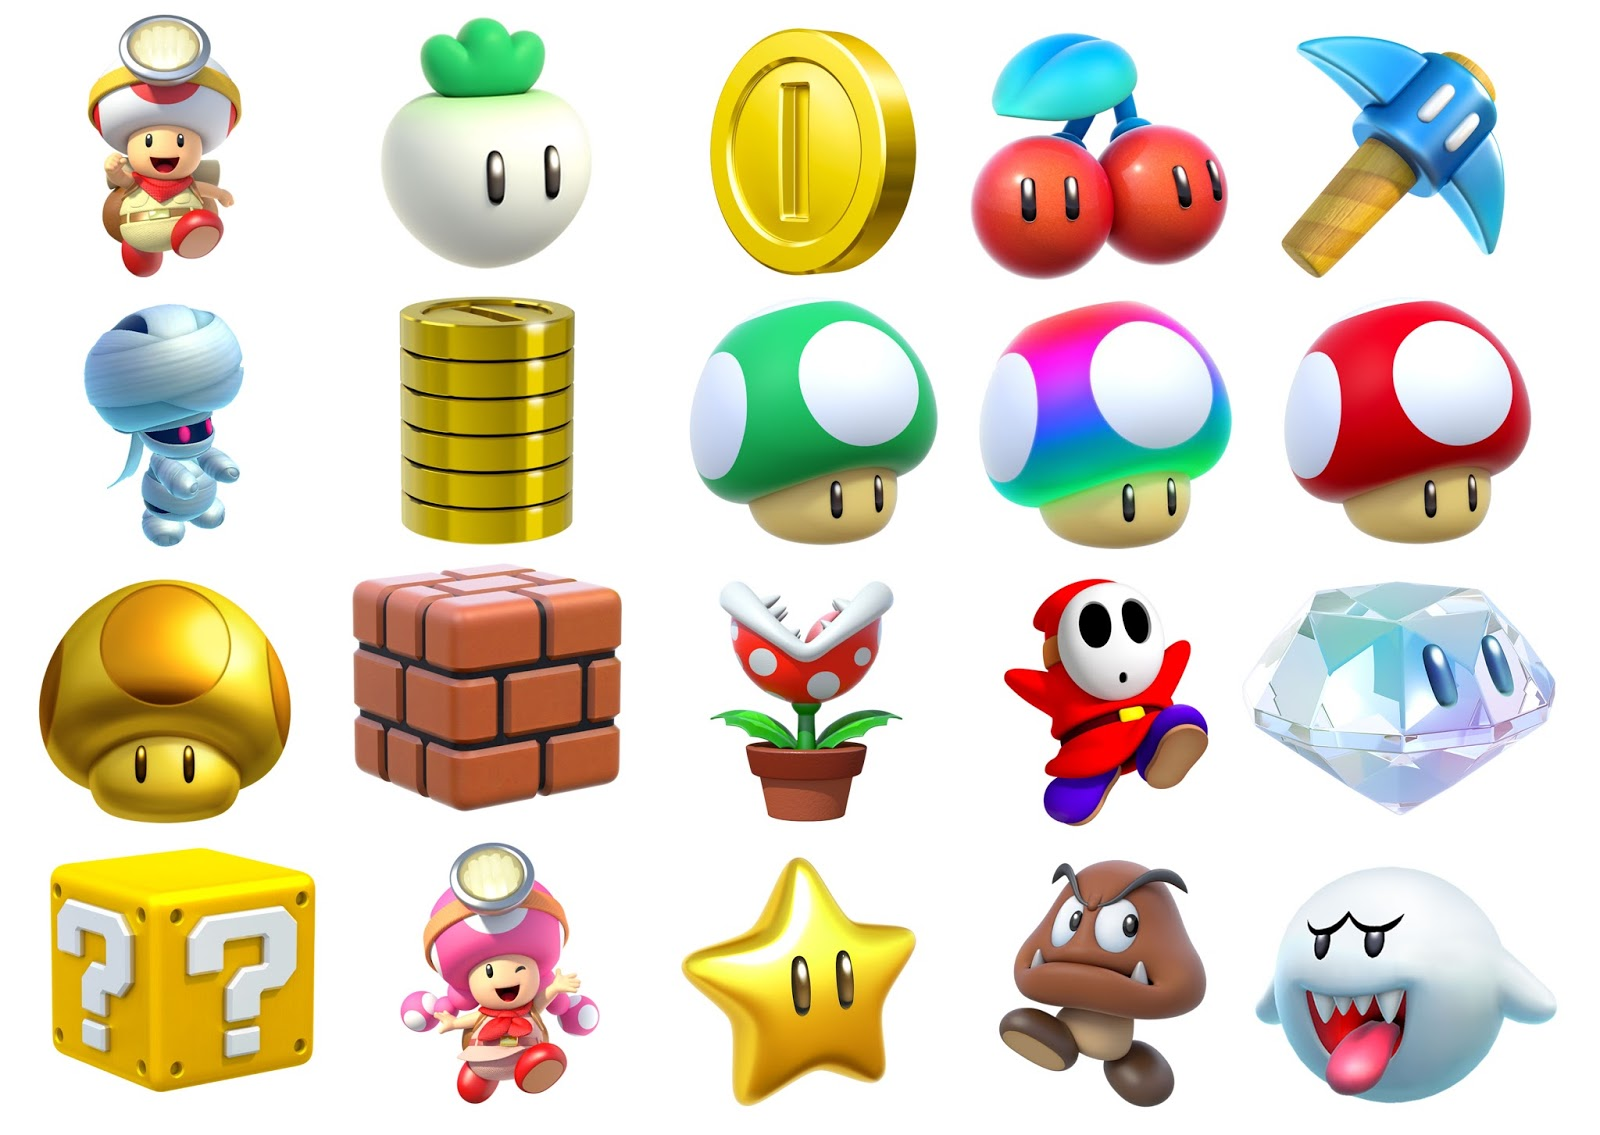 super mario scavenger hunt with downloads - Super Mario Pictures To Print